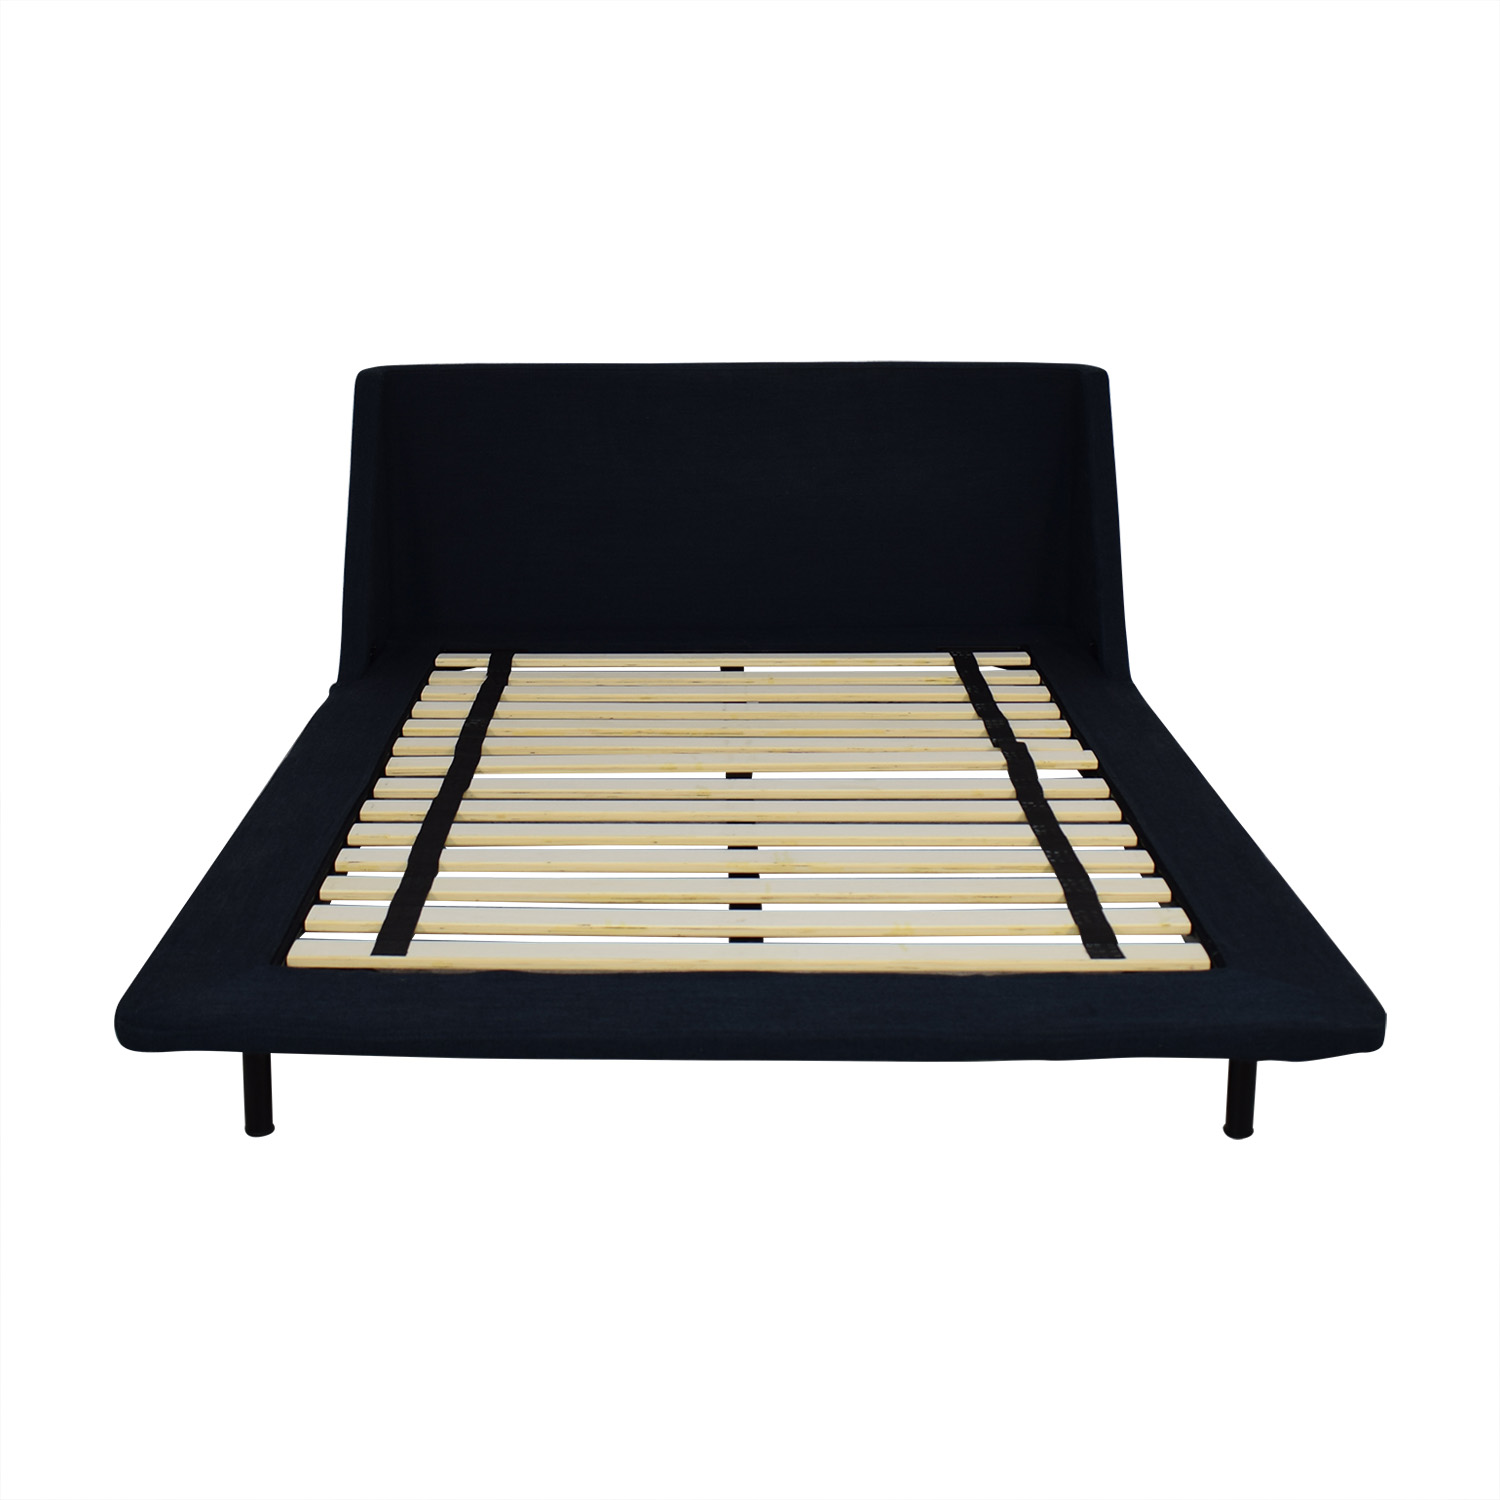 Blu Dot Blu Dot Queen Nook Bed coupon